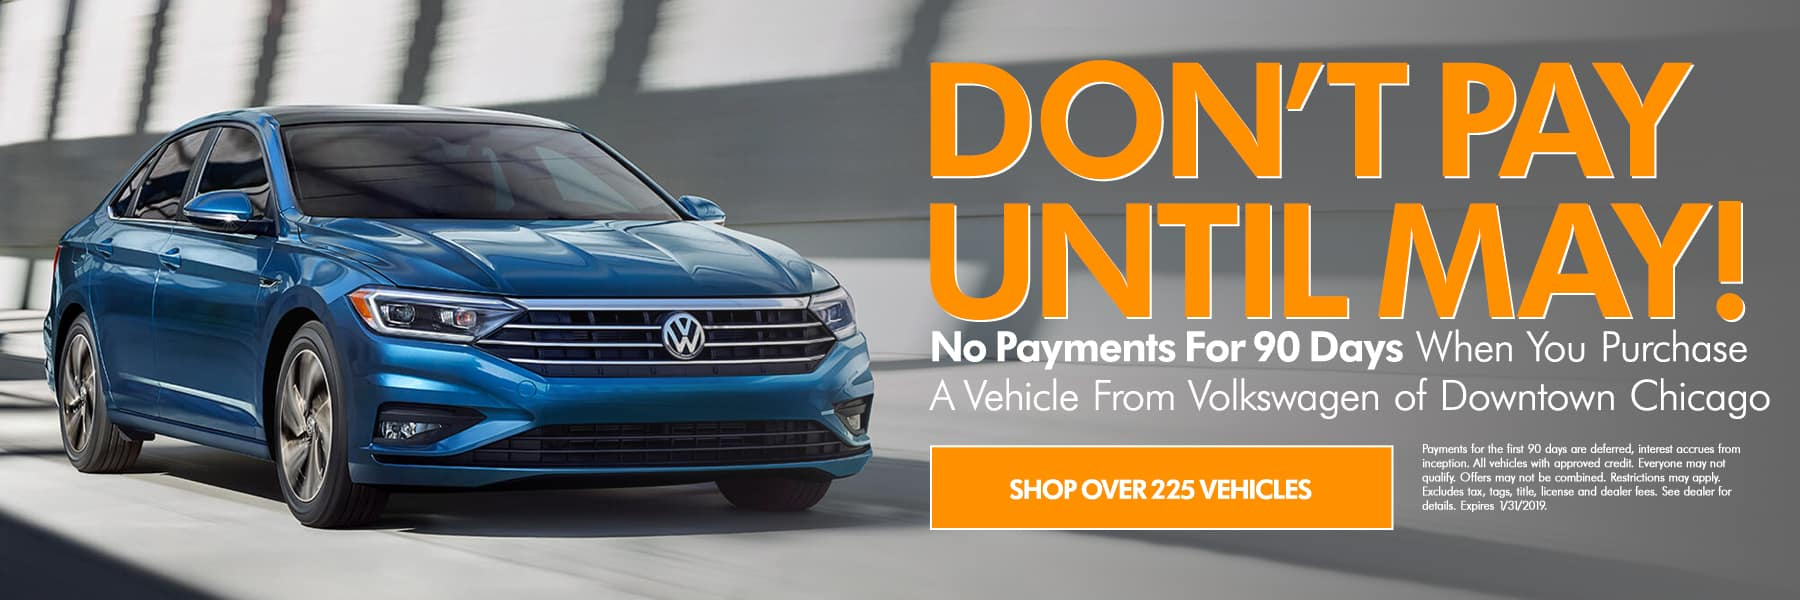 Don't Pay Until May - No payments for 90 days when you purchase a vehicle from Volkswagen of Downtown Chicago -  Shop over 225 vehicles